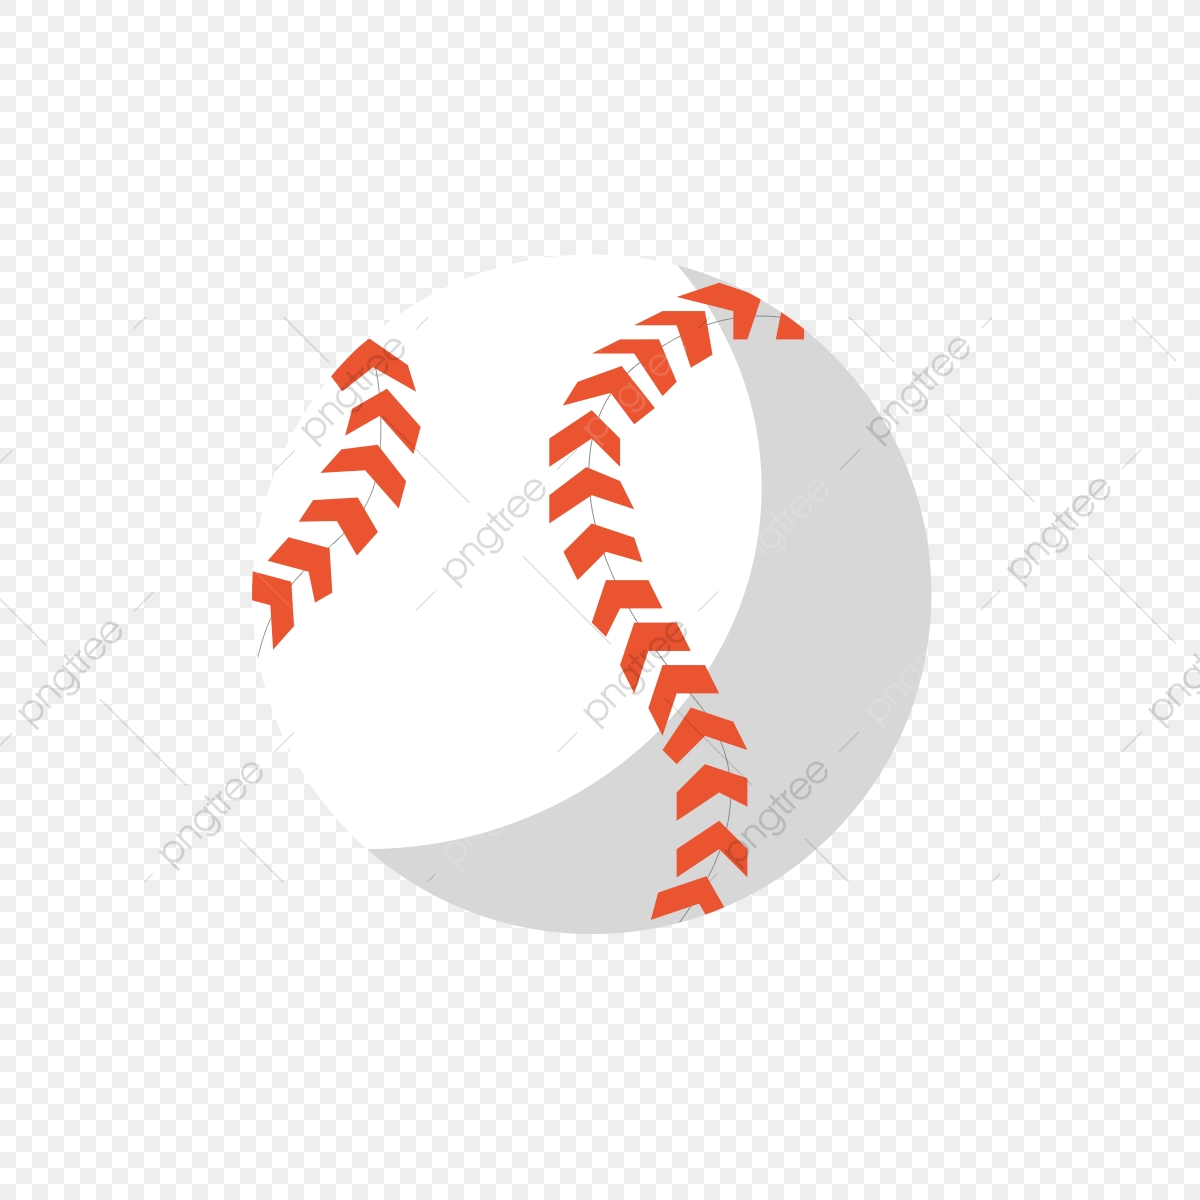 Social media icons camera. Baseball clipart icon